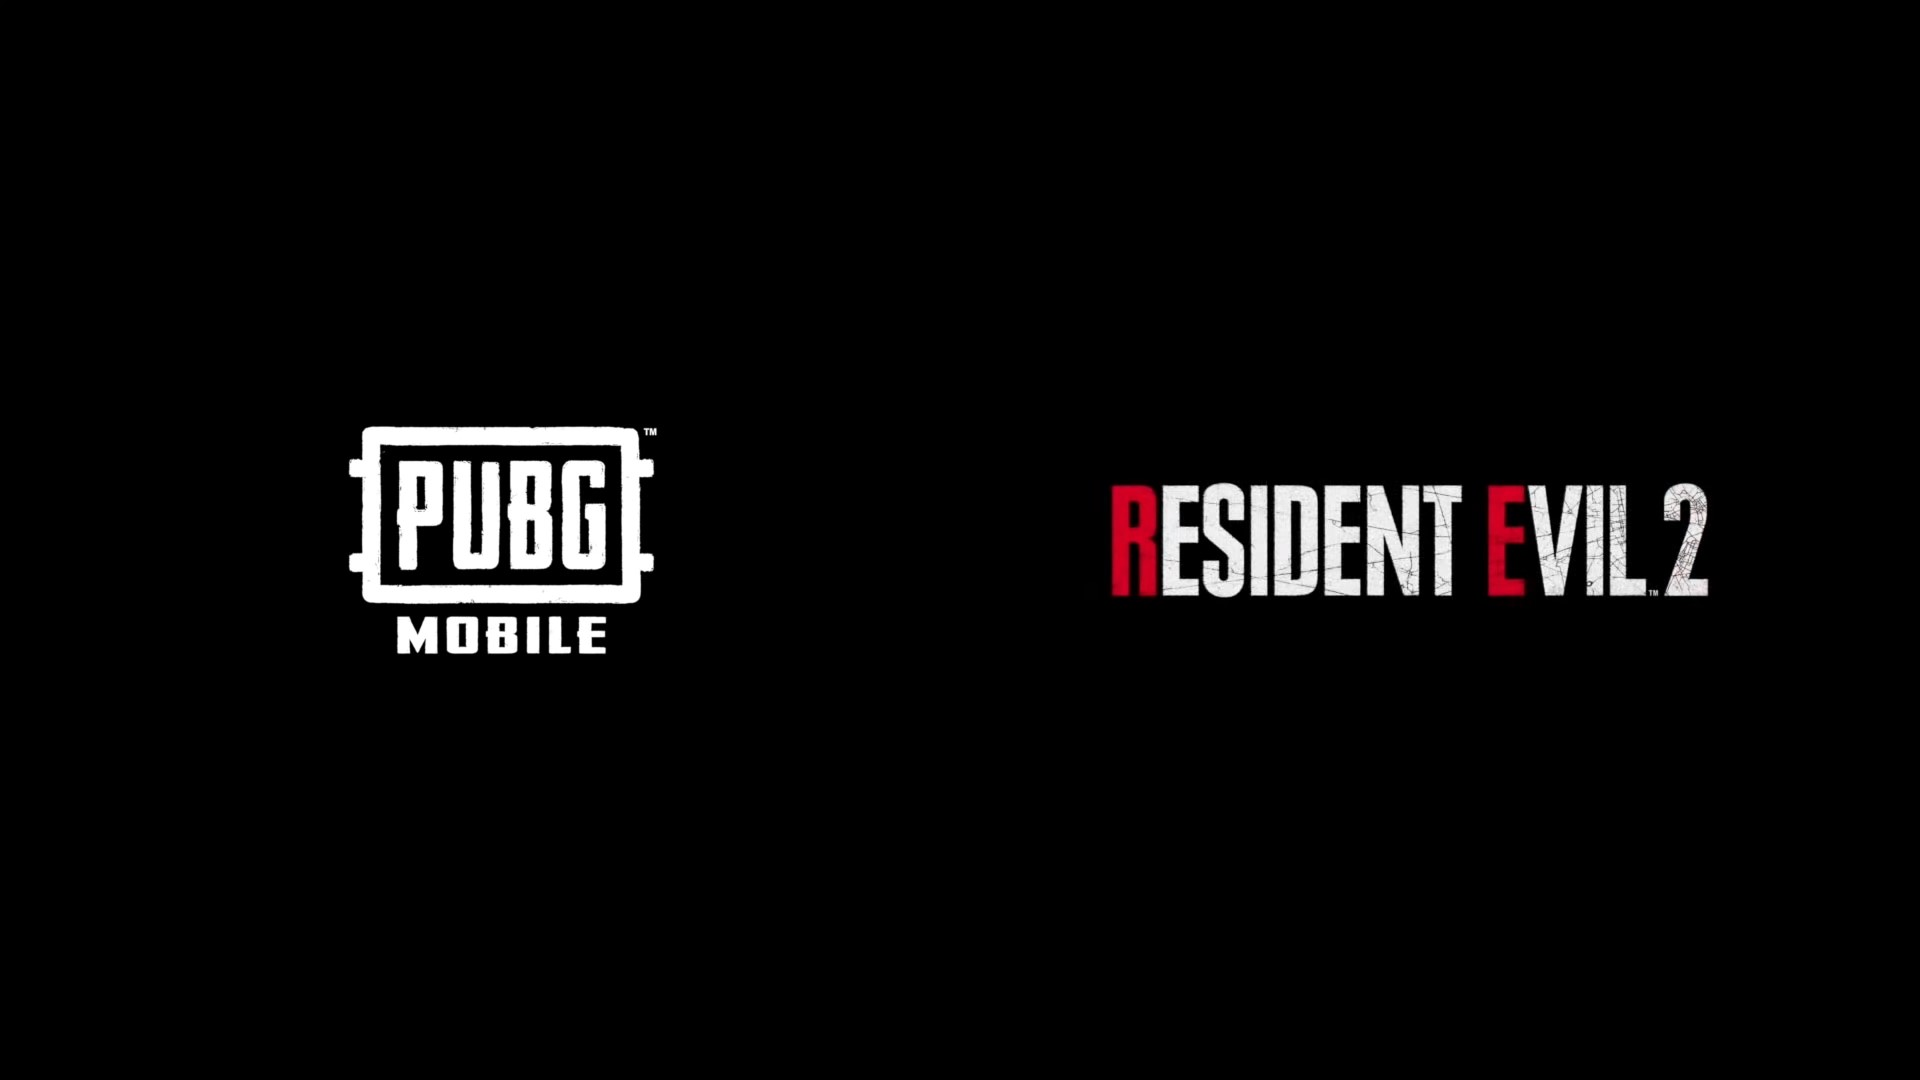 PUBG Mobile 0.11.0 beta brings Resident Evil 2 zombies to an exciting battle royale mode